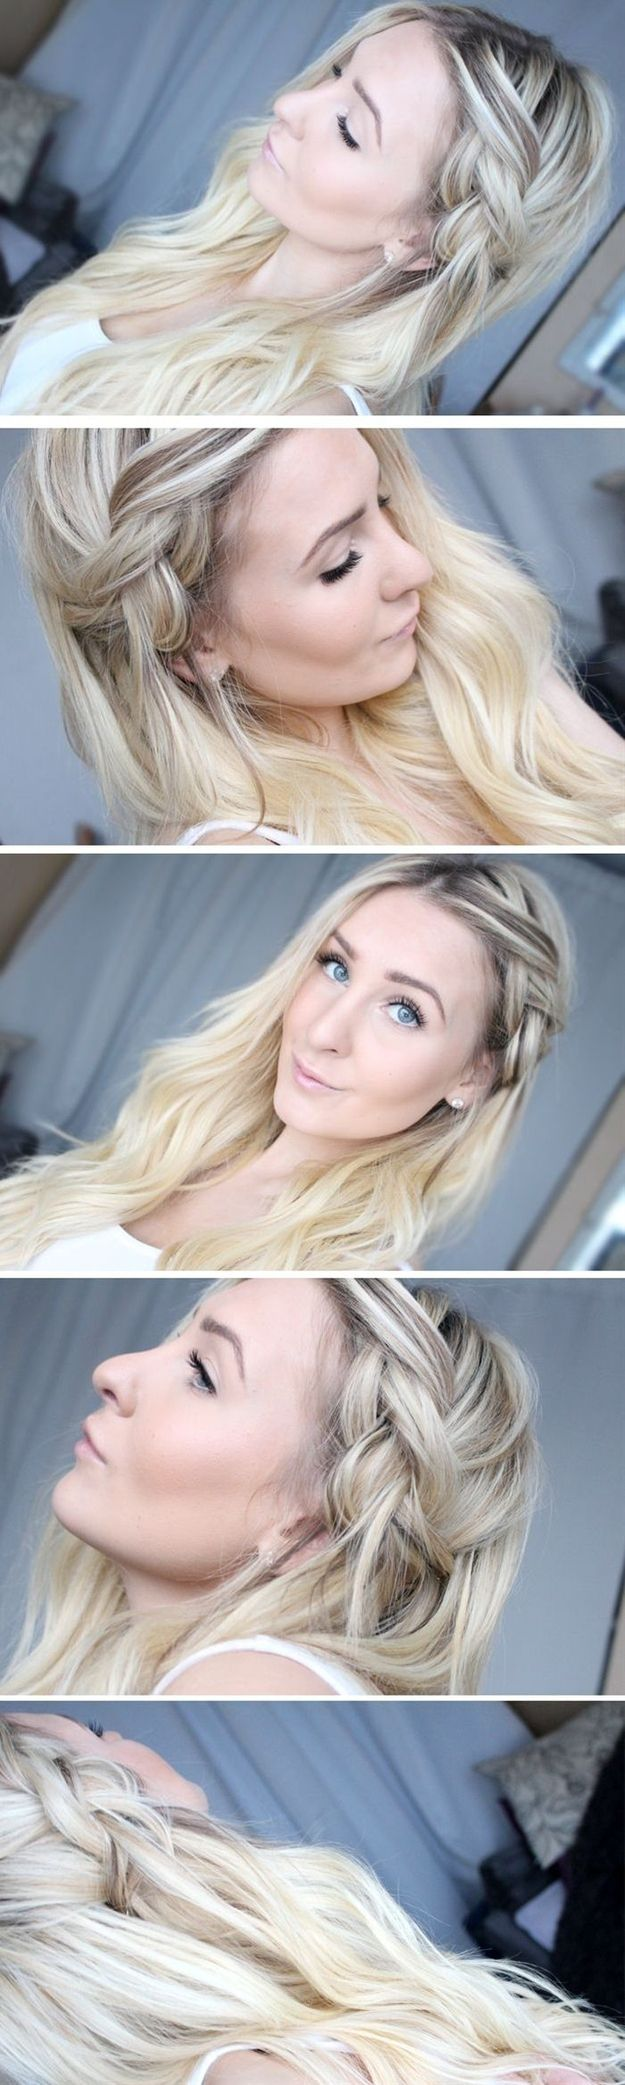 Such a side braid is excellent on dirty hair. Hairstyling Hacks for Lazy Girl